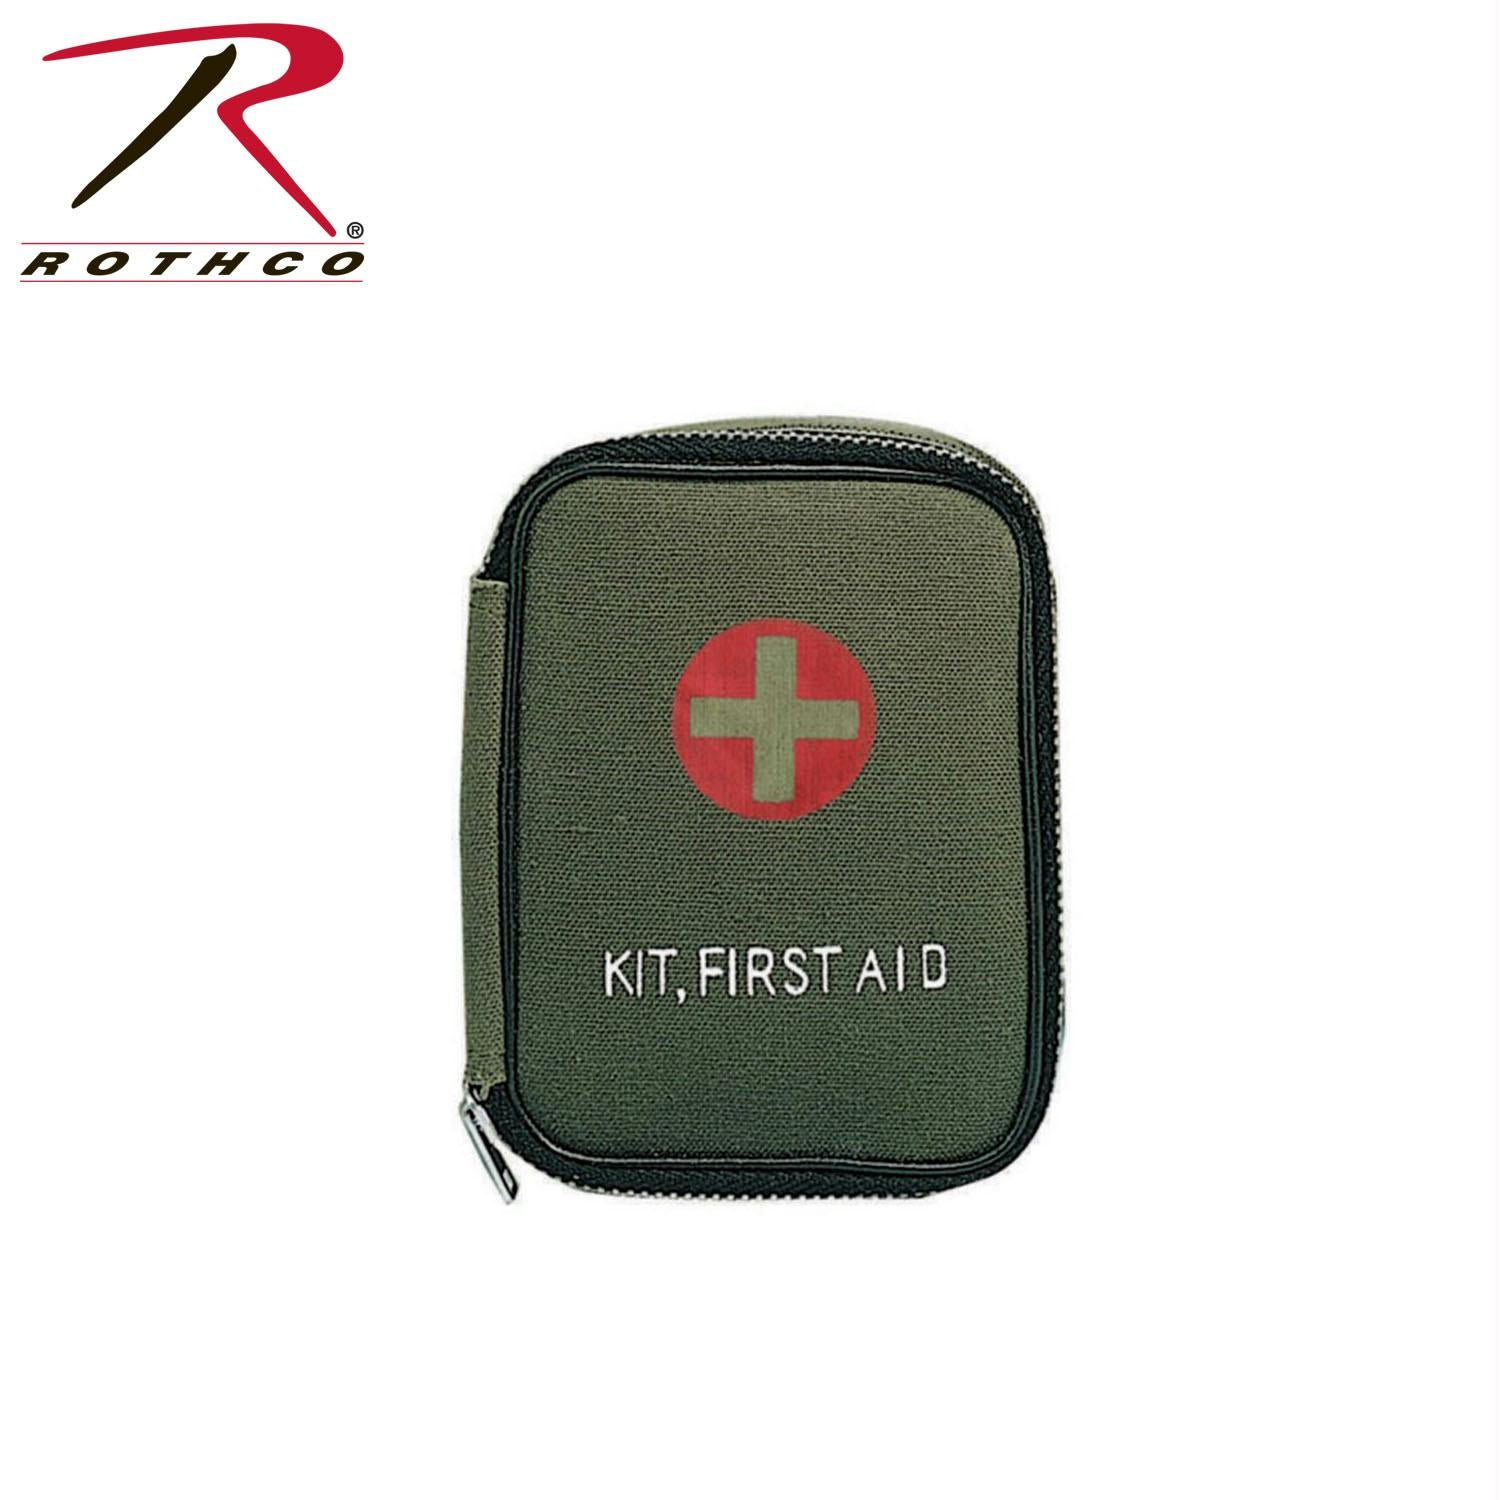 Rothco Military Zipper First Aid Kit - Olive Drab